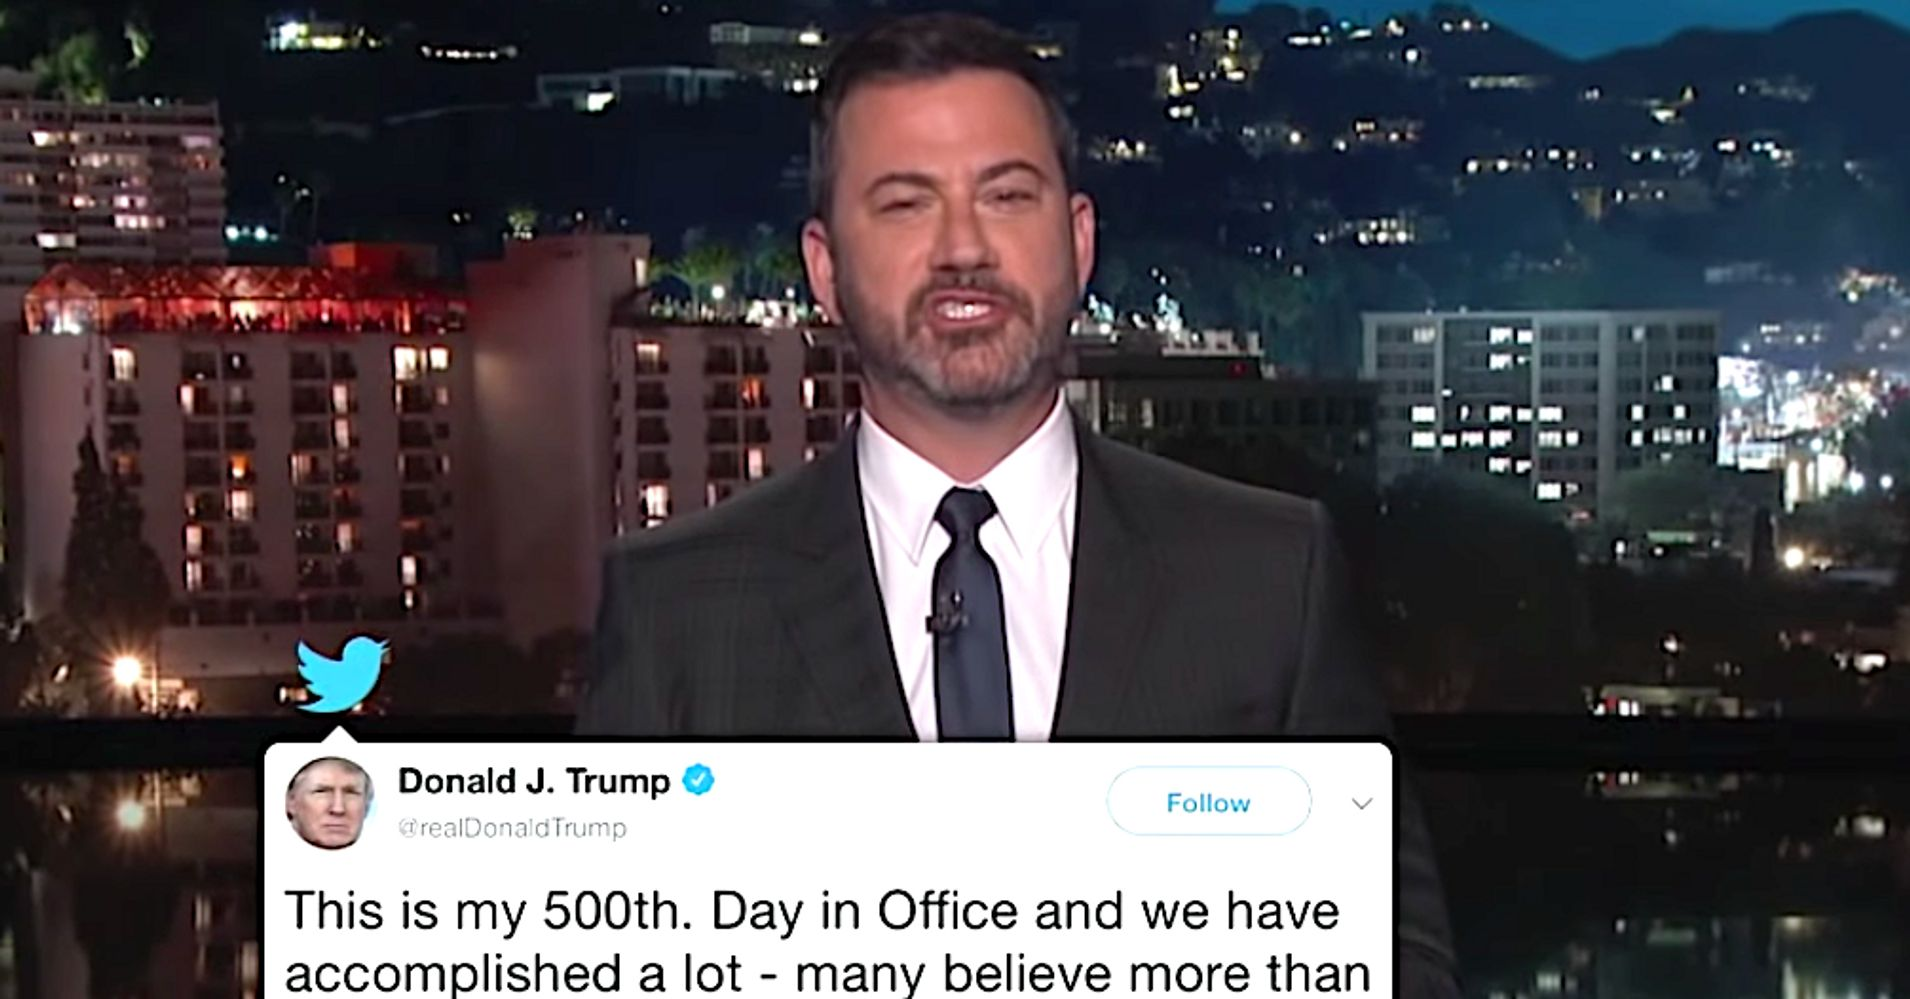 Jimmy Kimmel Celebrates Donald Trump's 500th Day In His Own Way